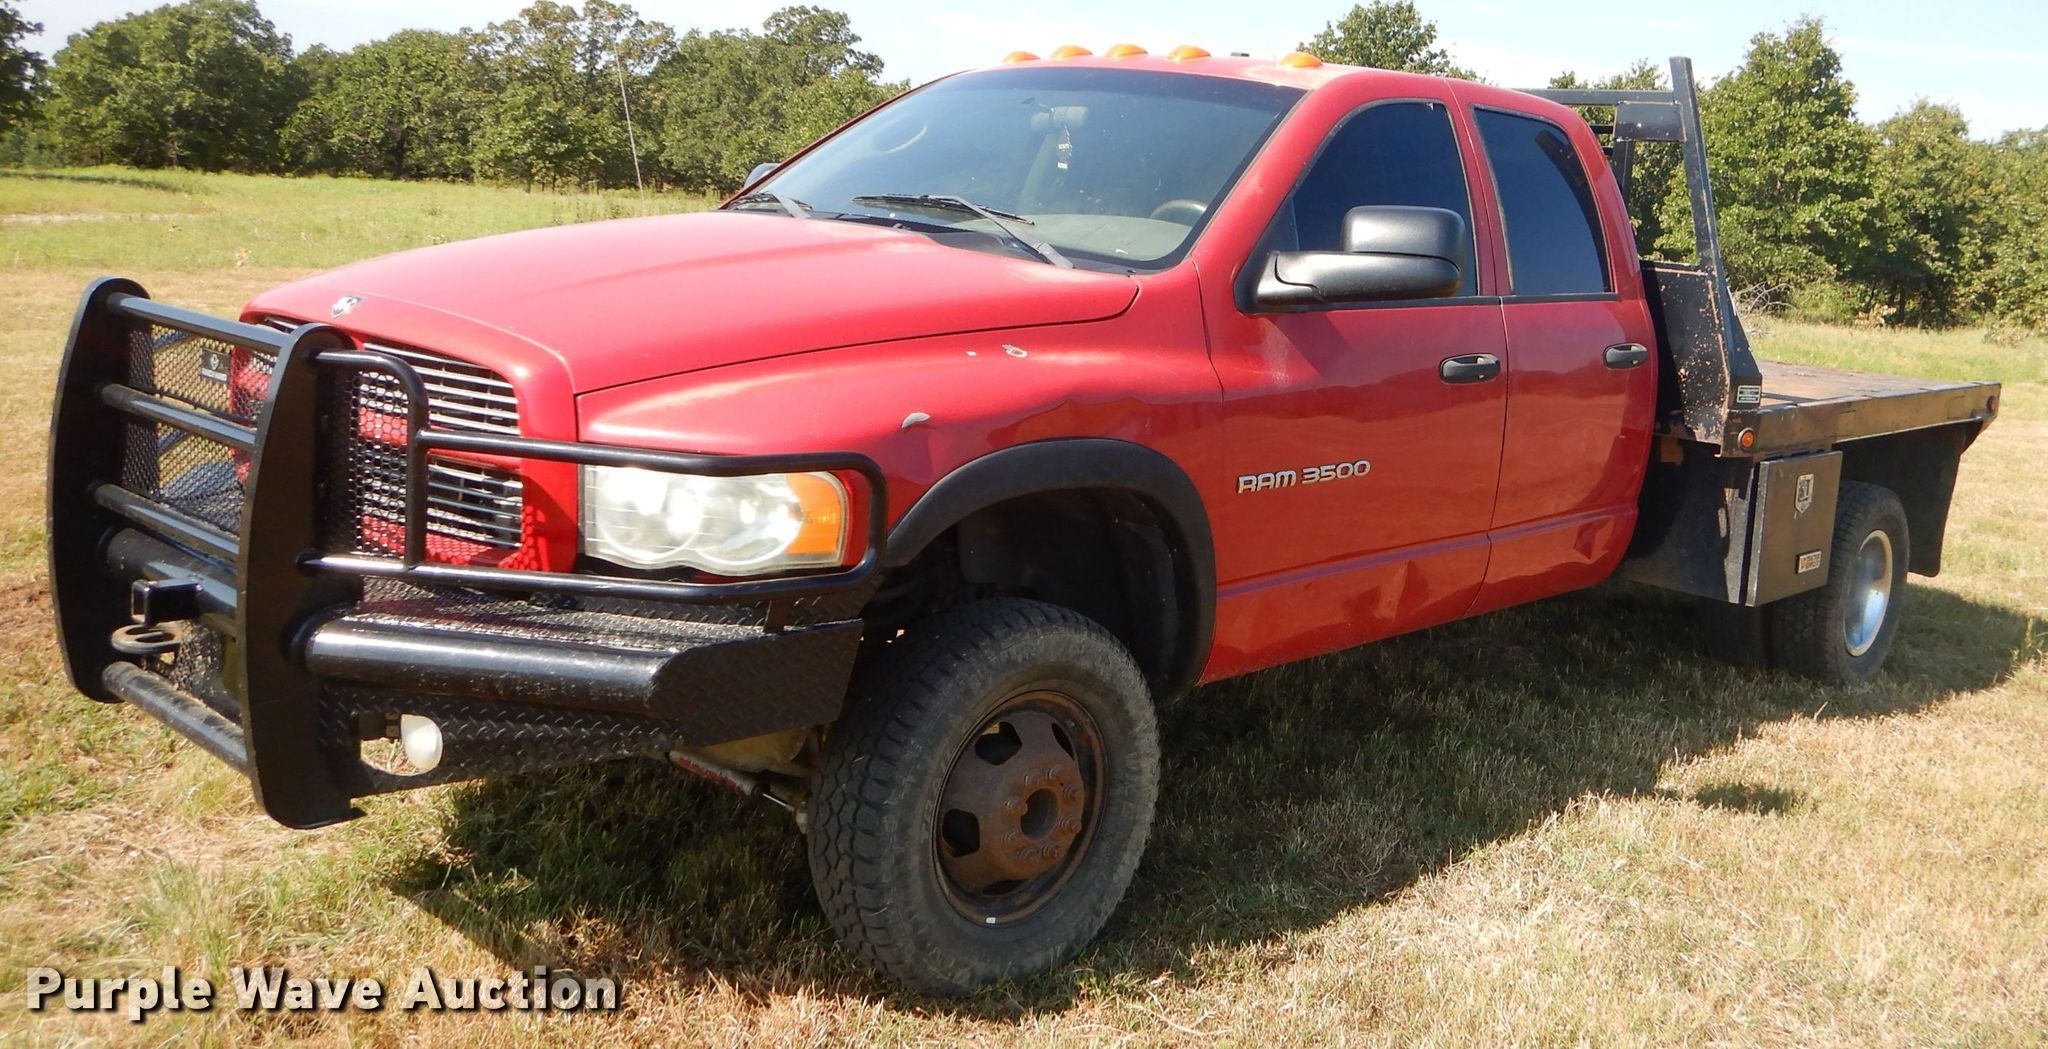 2003 Dodge Ram 3500 Quad Cab Flatbed Pickup Truck In Hominy Ok Item Fc9756 Sold Purple Wave